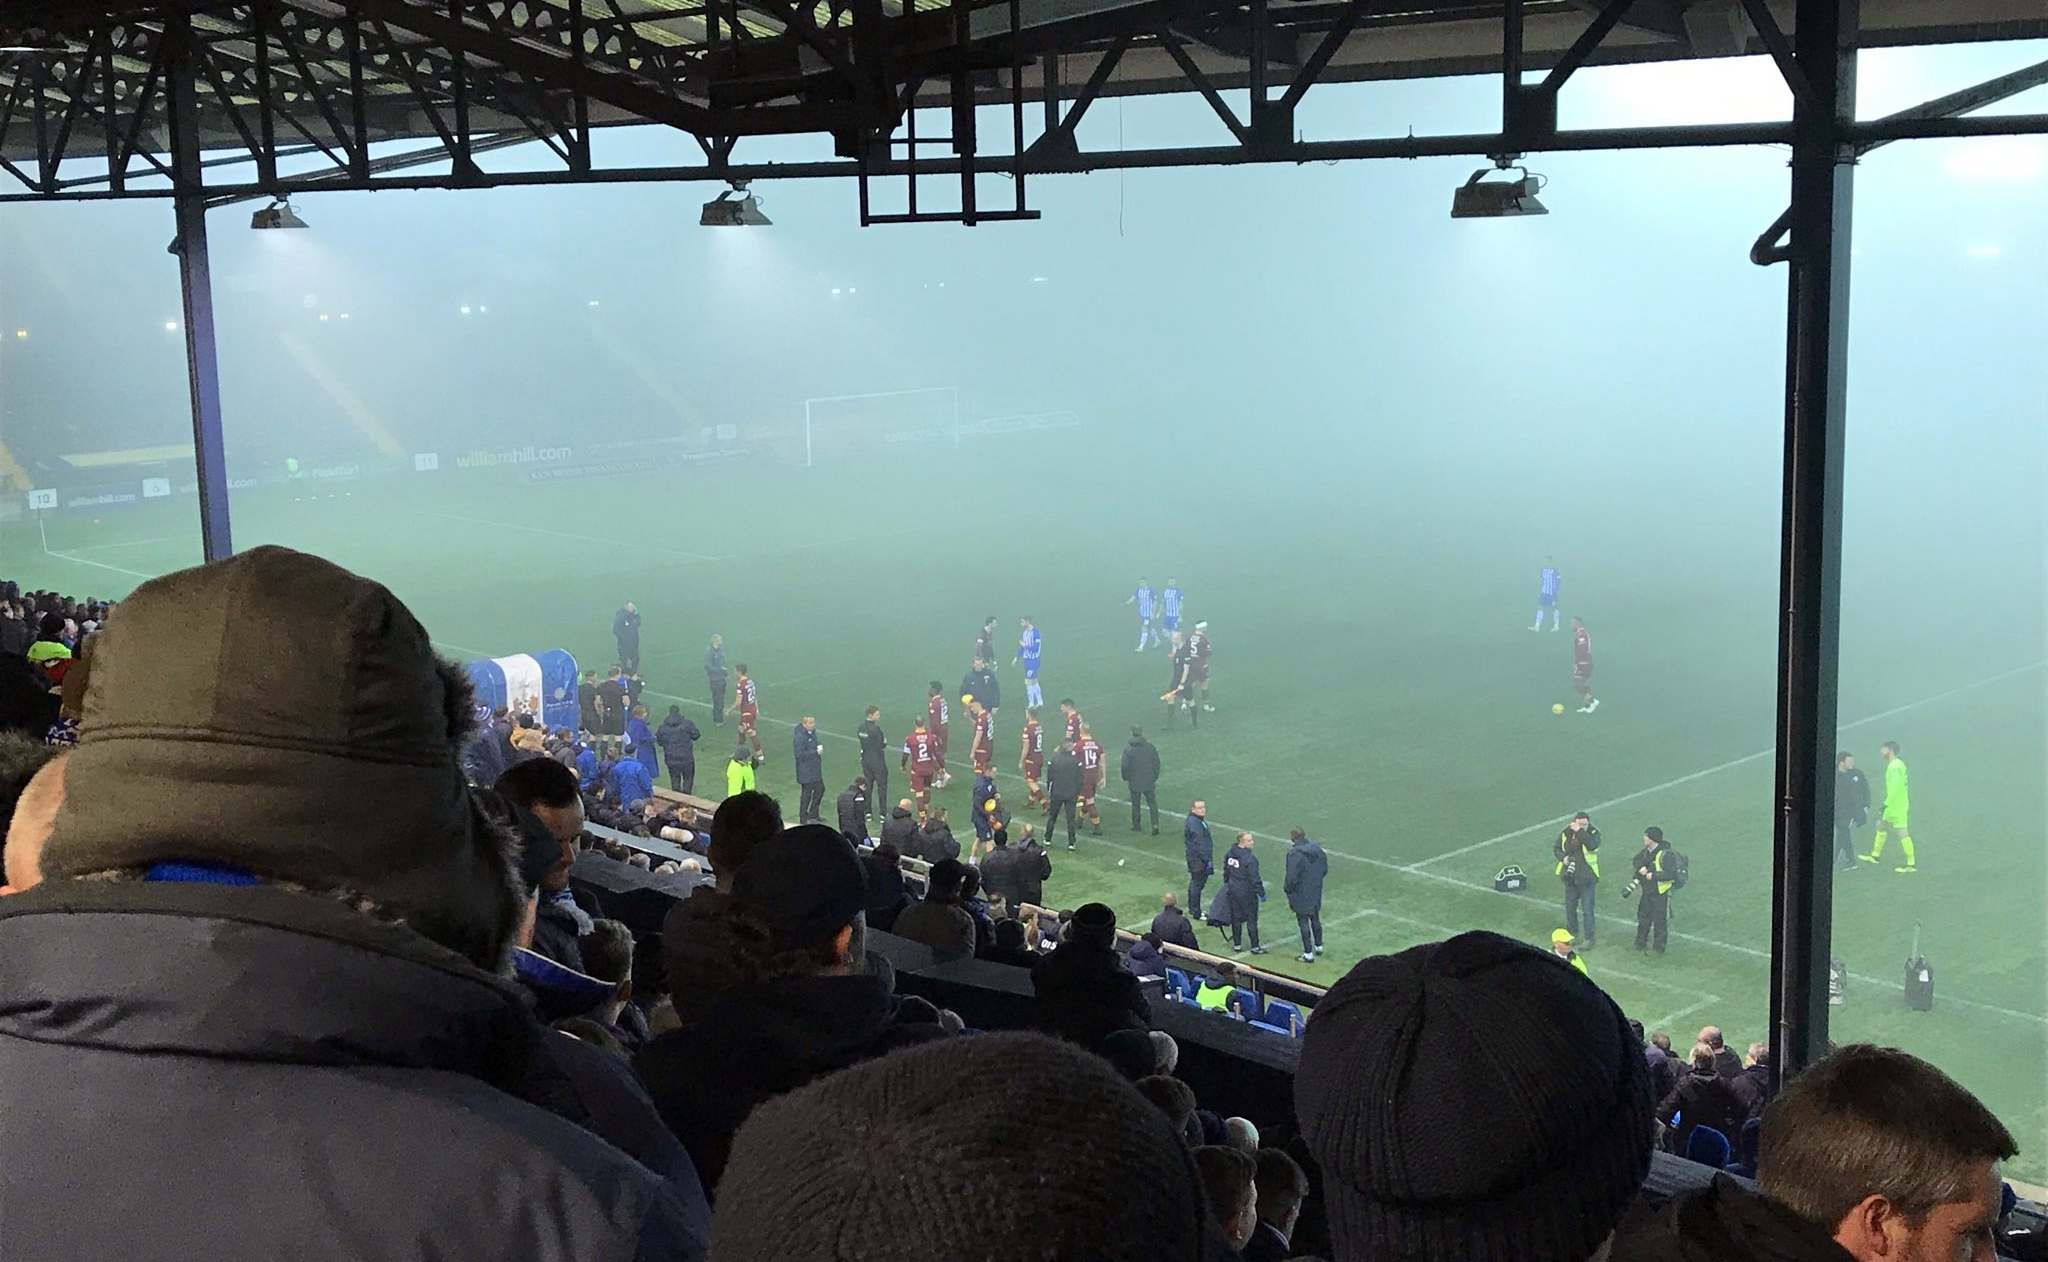 The match at Rugby Park was abandoned due to fog.